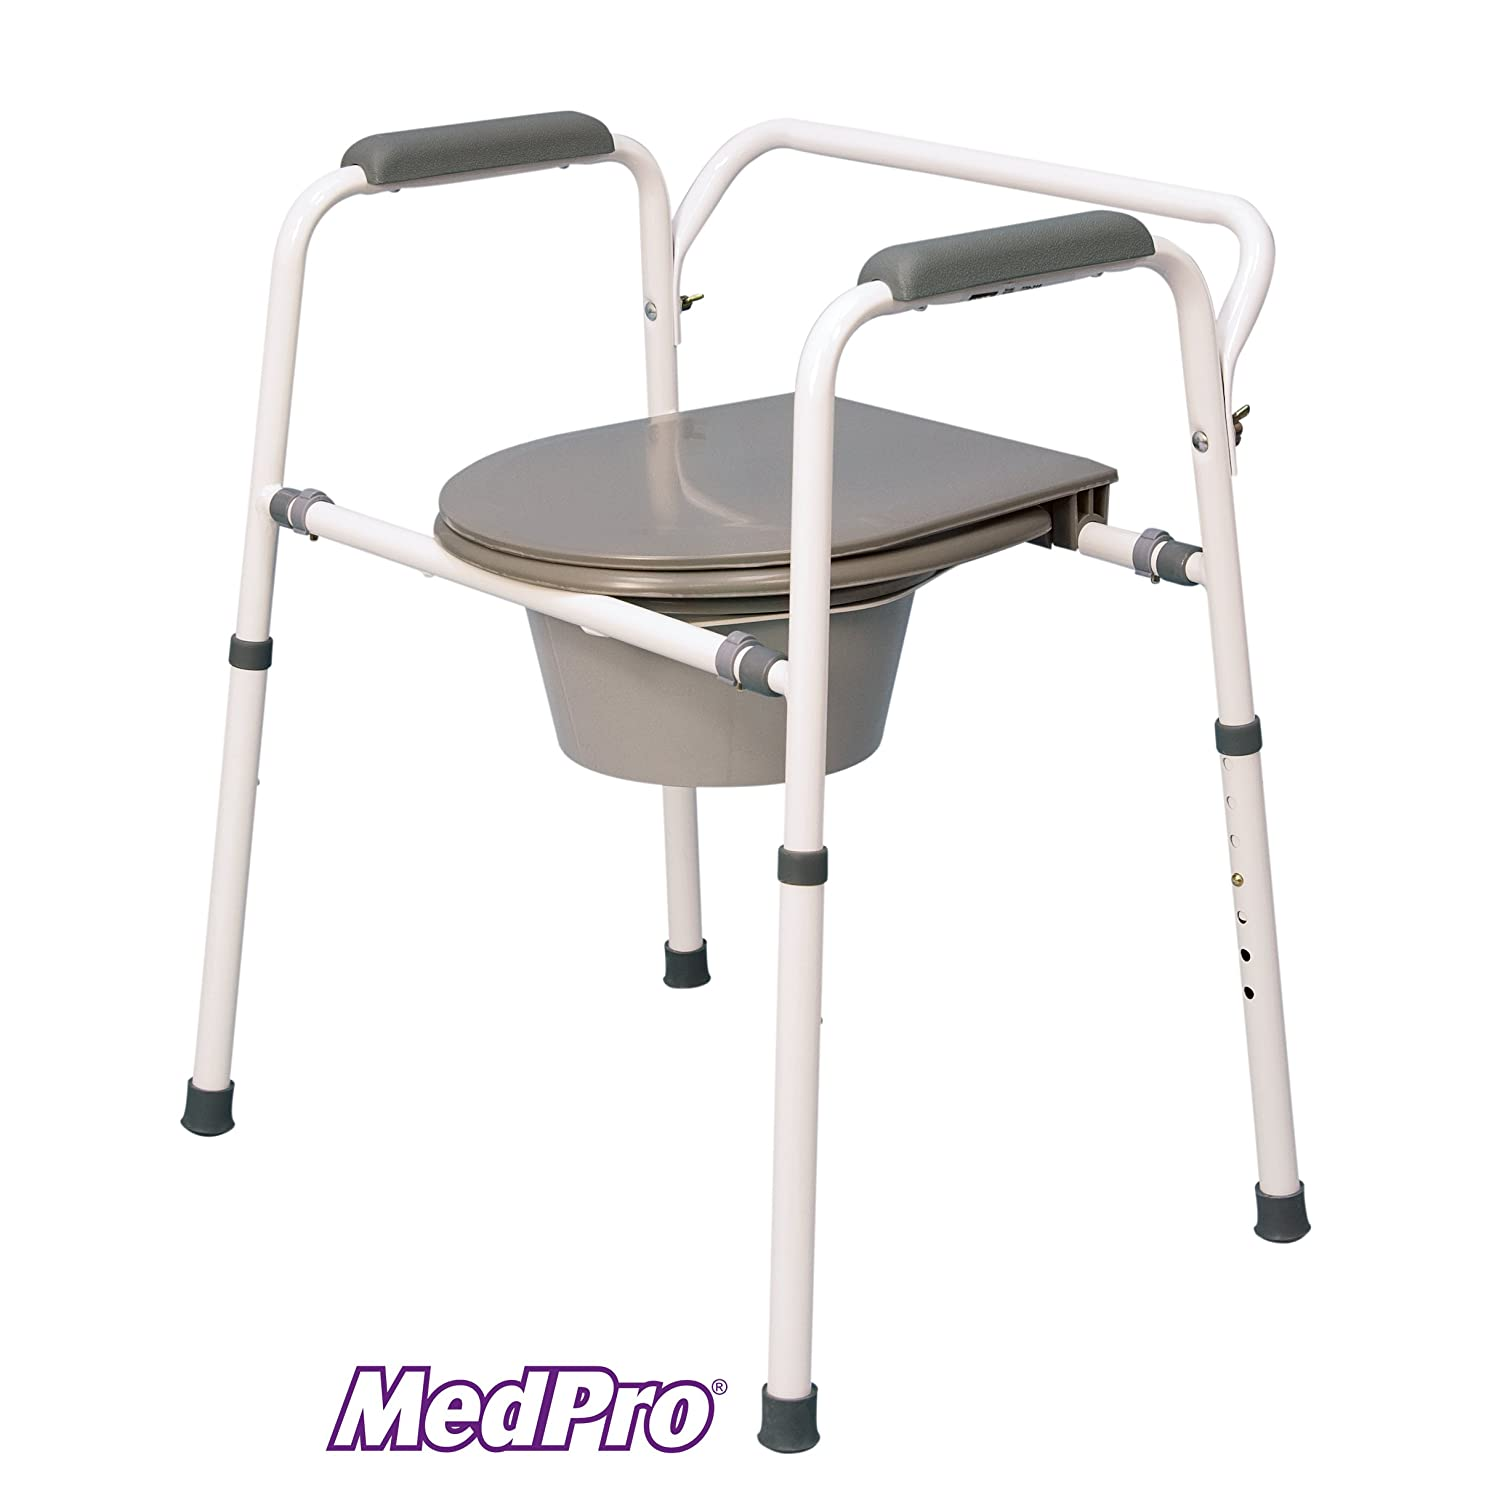 Amazon.com: MedPro Homecare Commode Chair with Adjustable Height ...